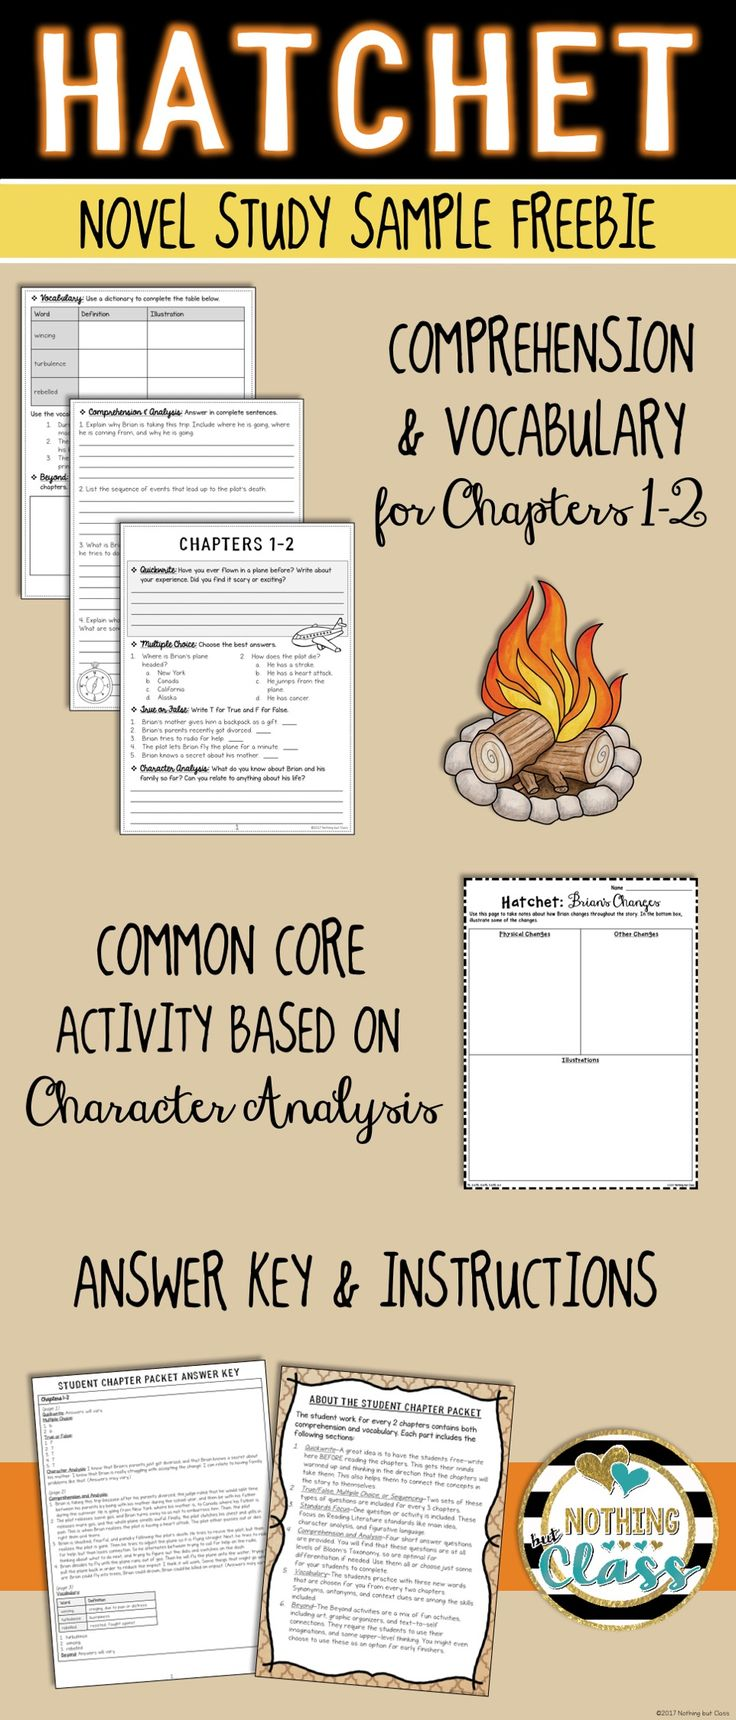 This is a 7 page FREE sample from my Common Core aligned book study for Hatchet, by Gary Paulsen.  It includes vocabulary and comprehension student work for Chapters 1-2, along with a character analysis activity, and all answer keys.   This makes a perfect no prep book companion, and is great for whole class, small group, or independent study.